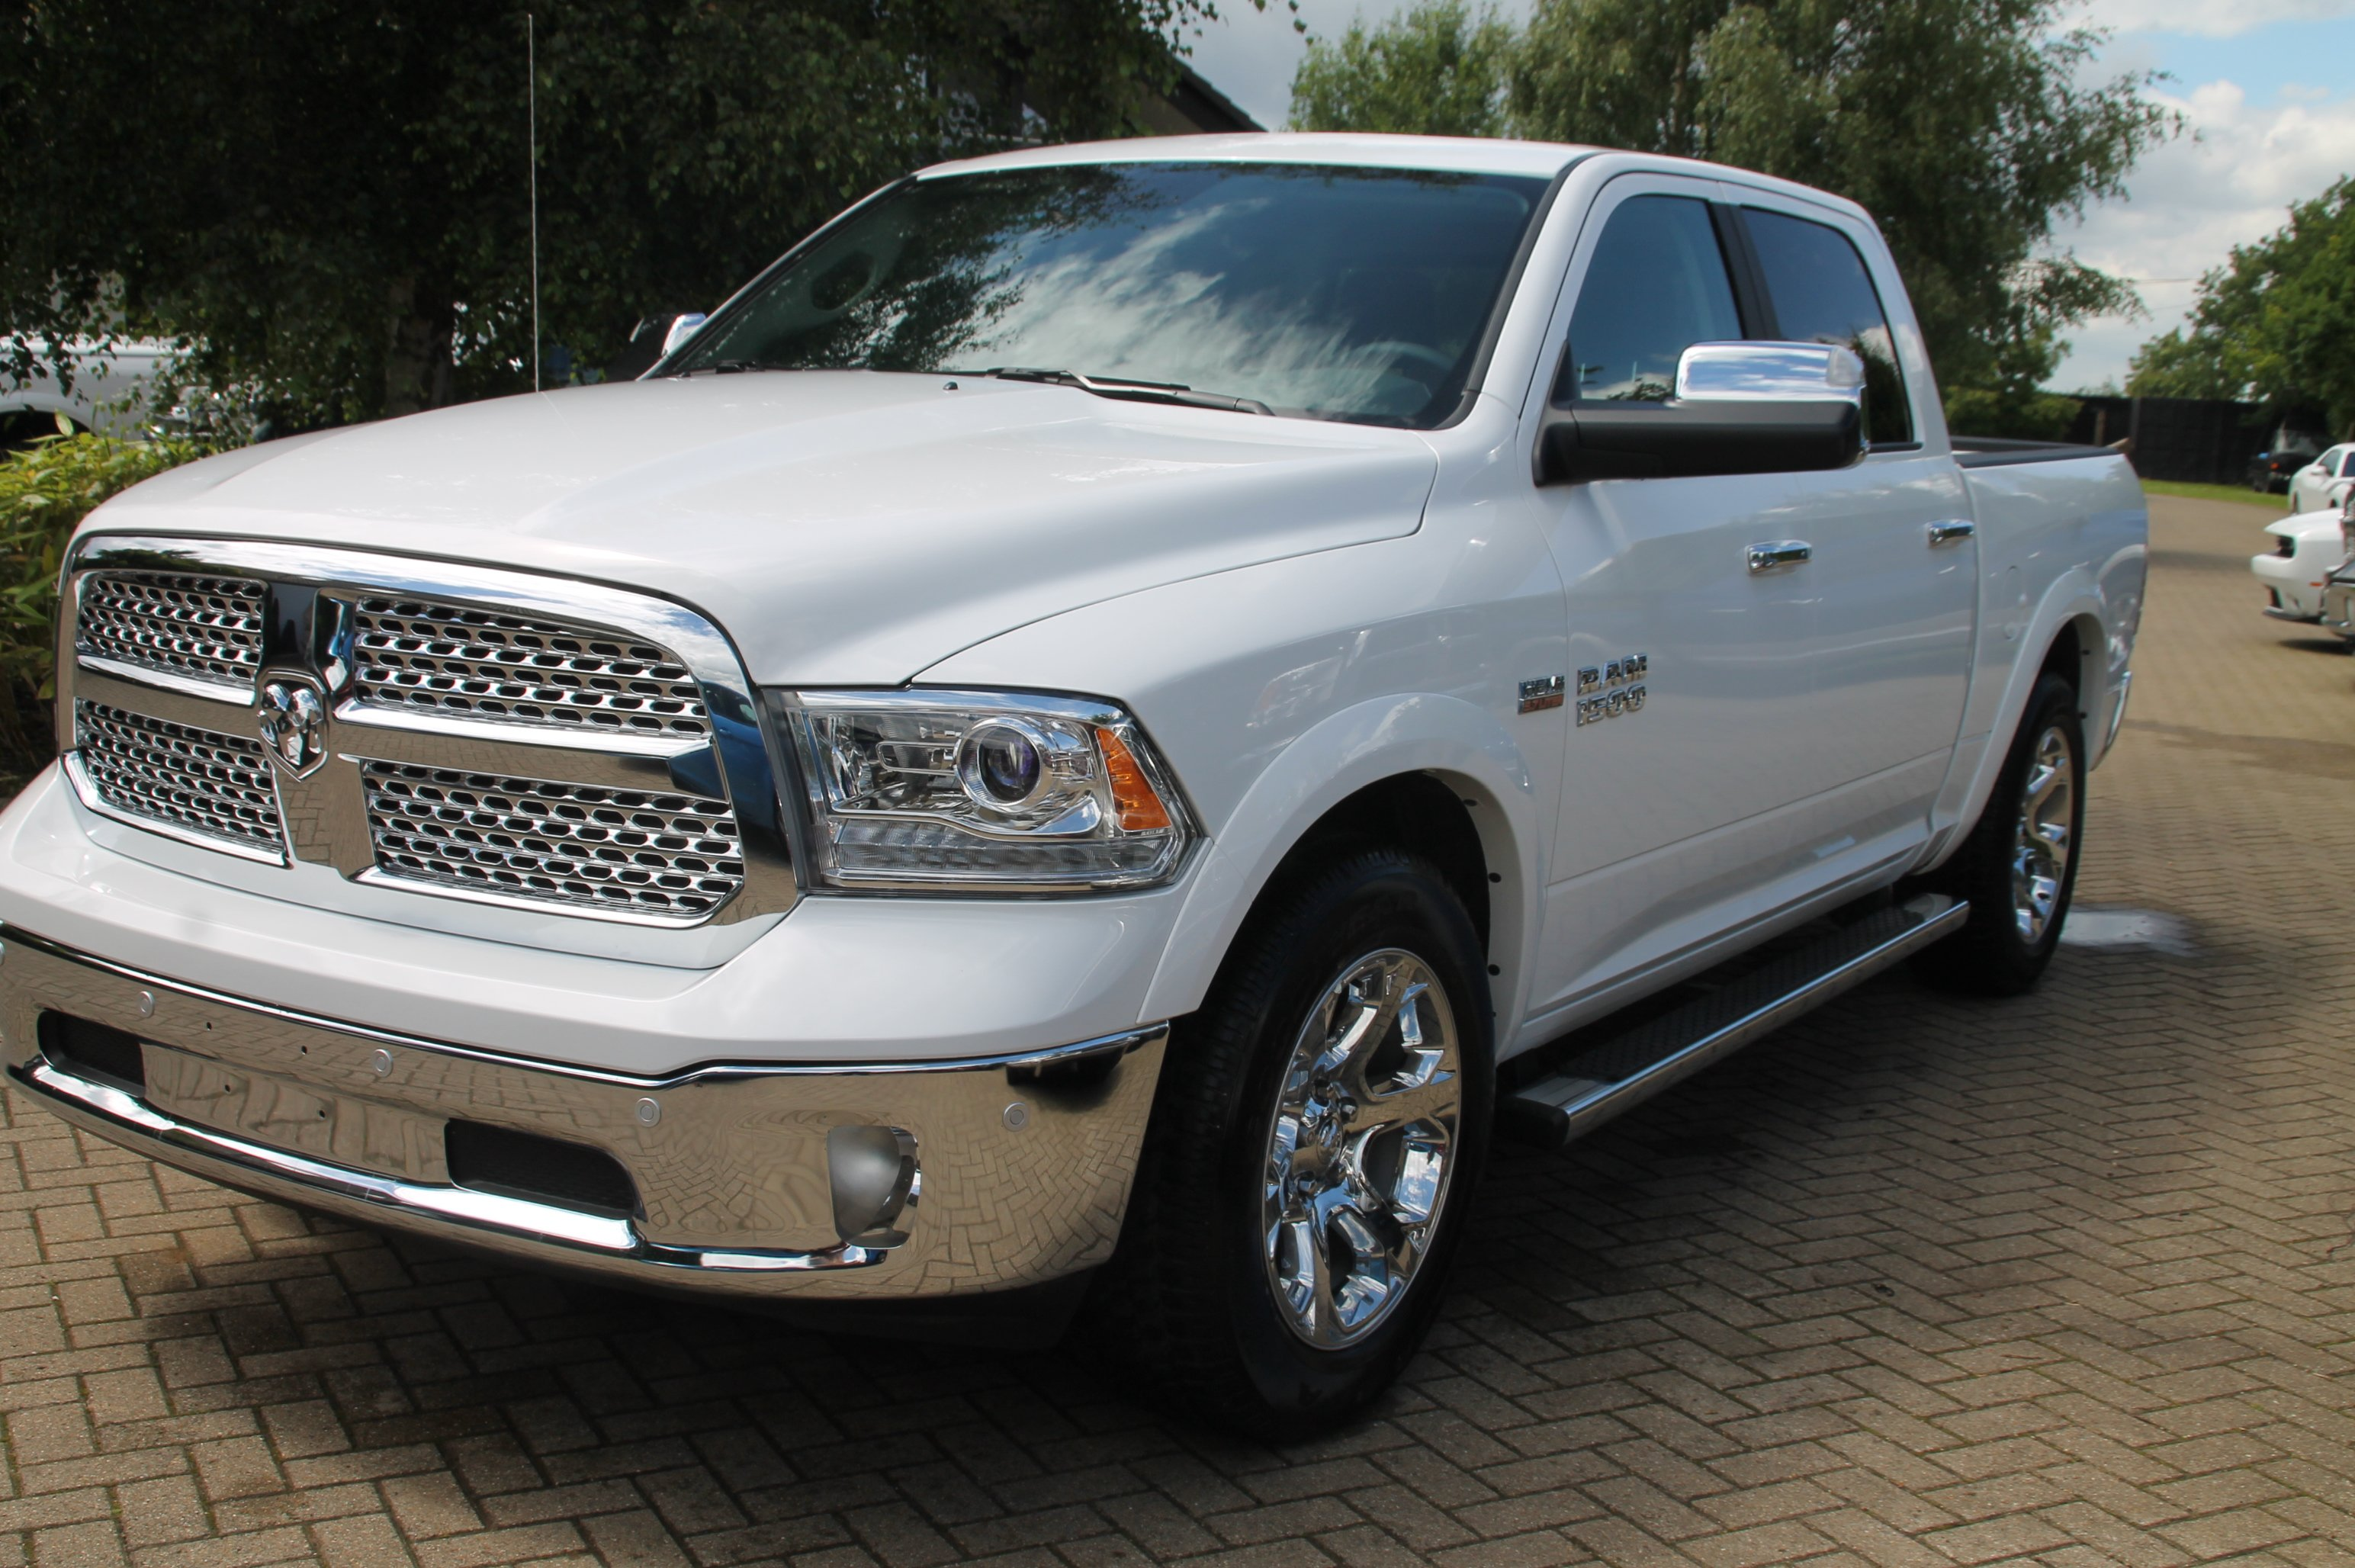 2016 dodge ram 1500 crew cab laramie 4x4 with air 51st state autos. Black Bedroom Furniture Sets. Home Design Ideas